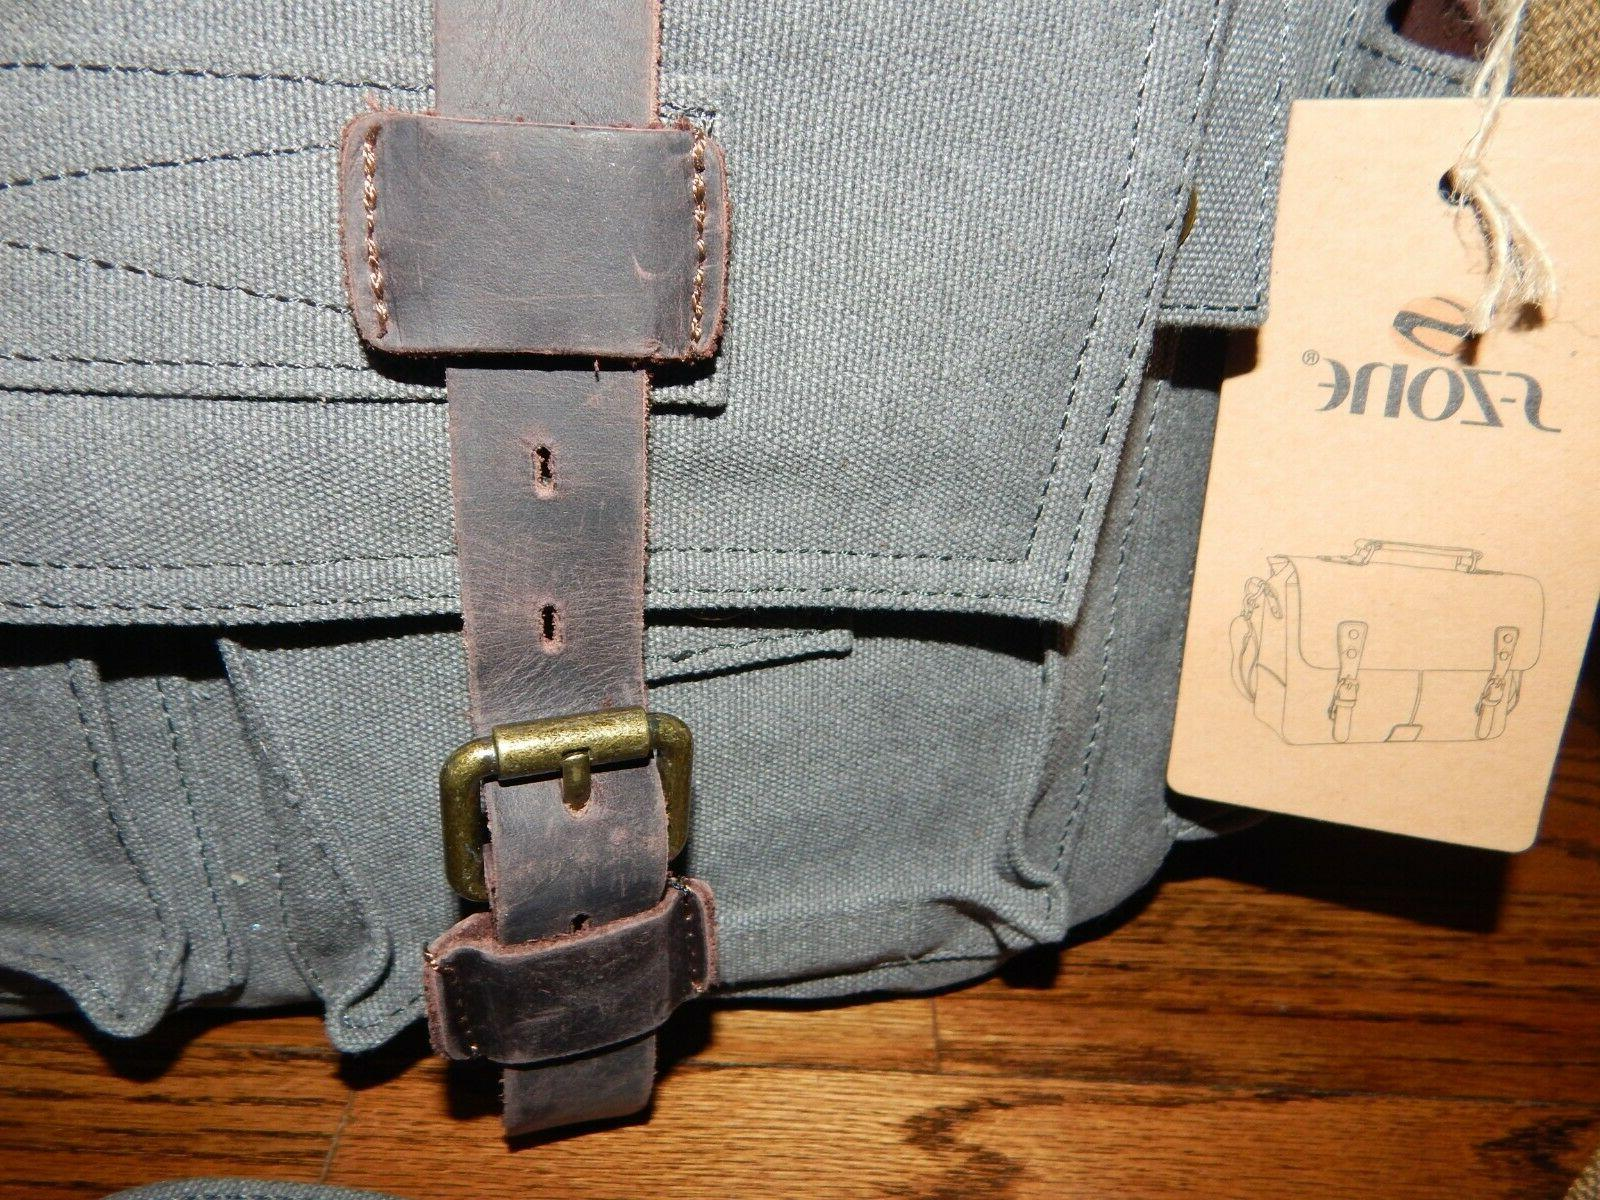 S-ZONE Style & Messenger Briefcase Laptop Bag